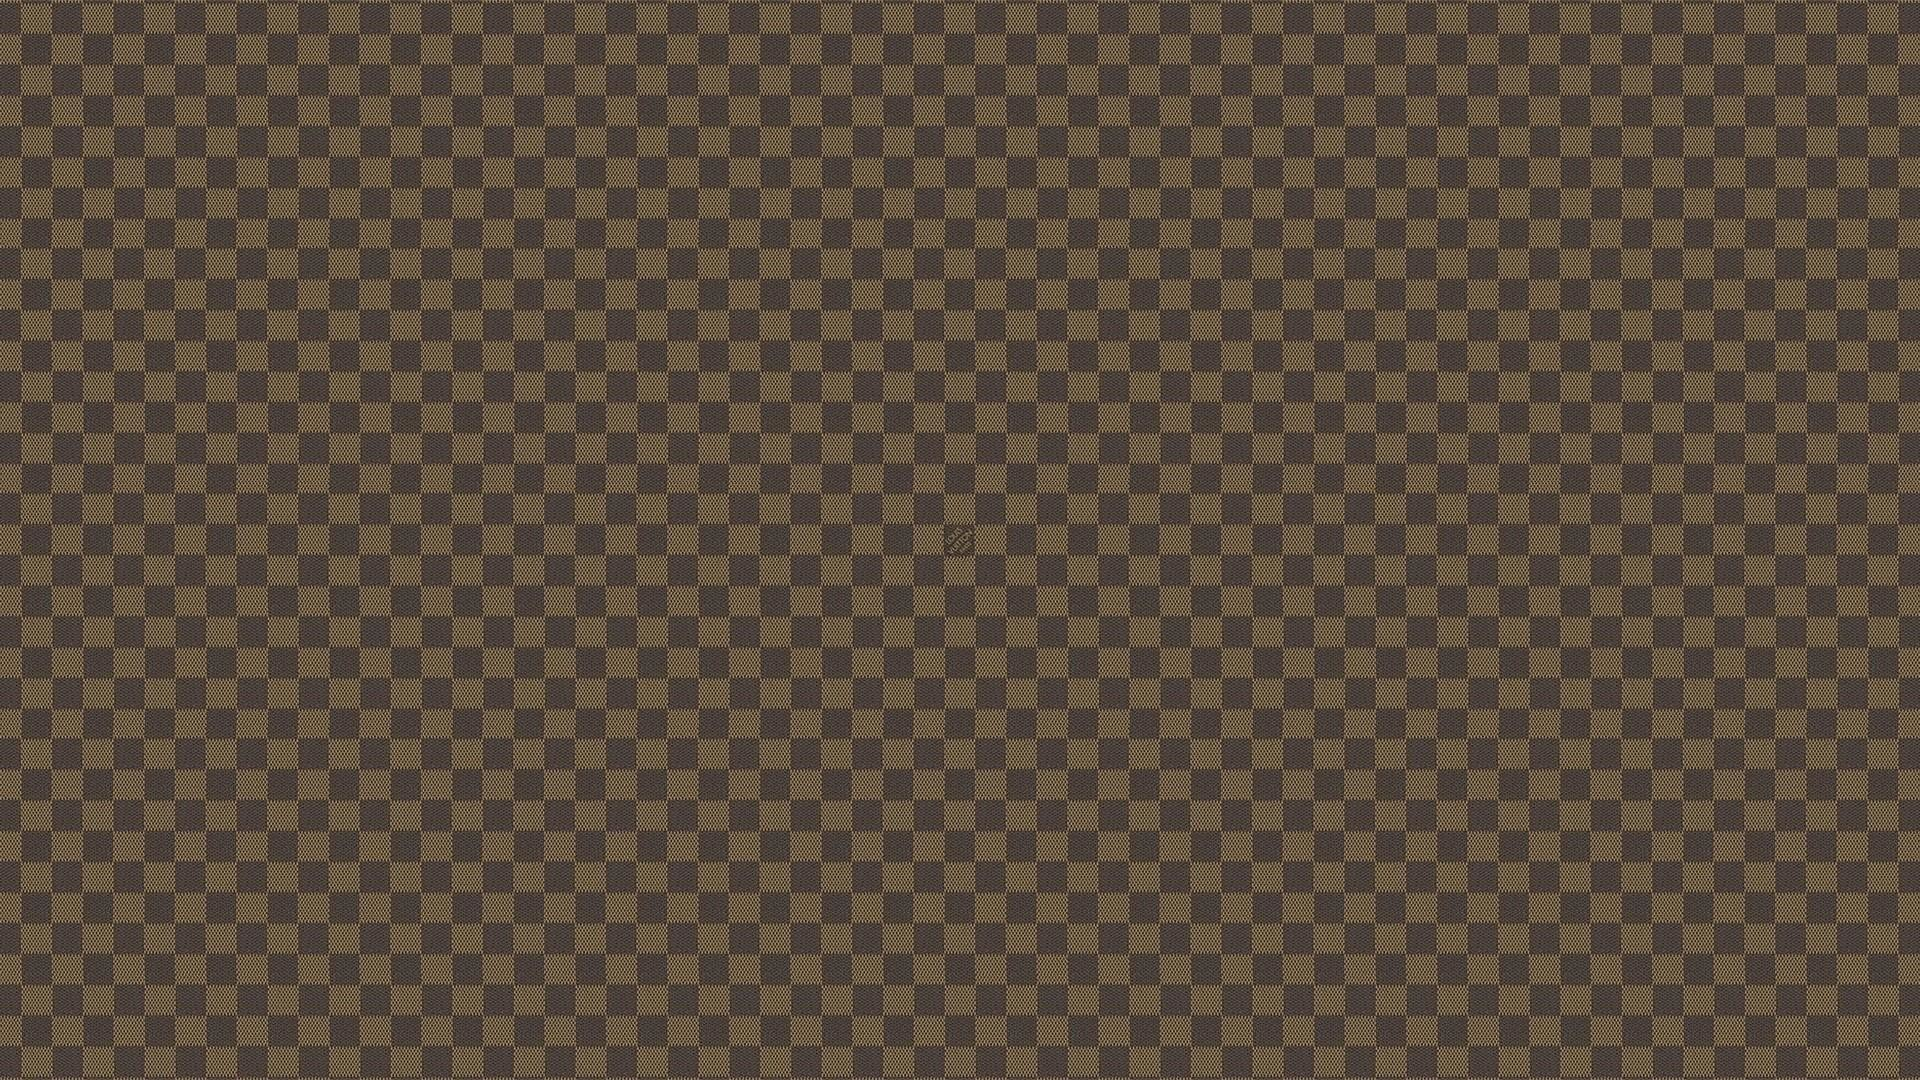 Lv wallpaper 72 images 1080x1920 louis vuitton monogram empreinte 2 wallpapers for galaxy s5 voltagebd Choice Image